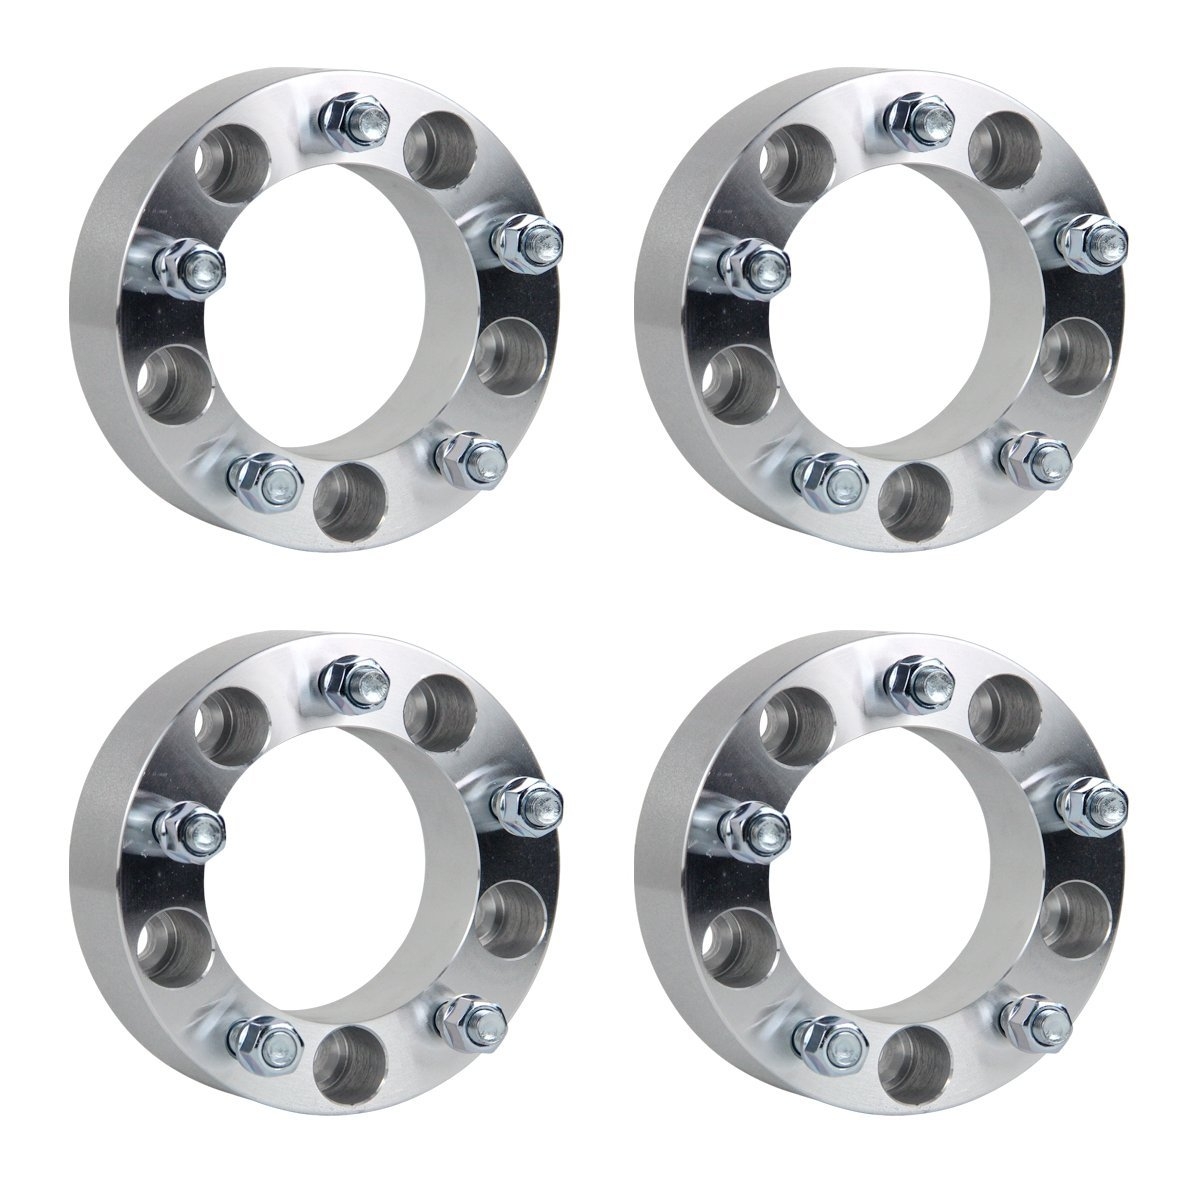 "GESS 4pcs 2"" 5x5.5 to 5x5.5 (5x139.7 to 5x139.7) Wheel Spacers 1/2"" studs for Ford E150 Ford F150 Ford Bronco Dodge Ram 1500 Ramcharger Jeep CJ"